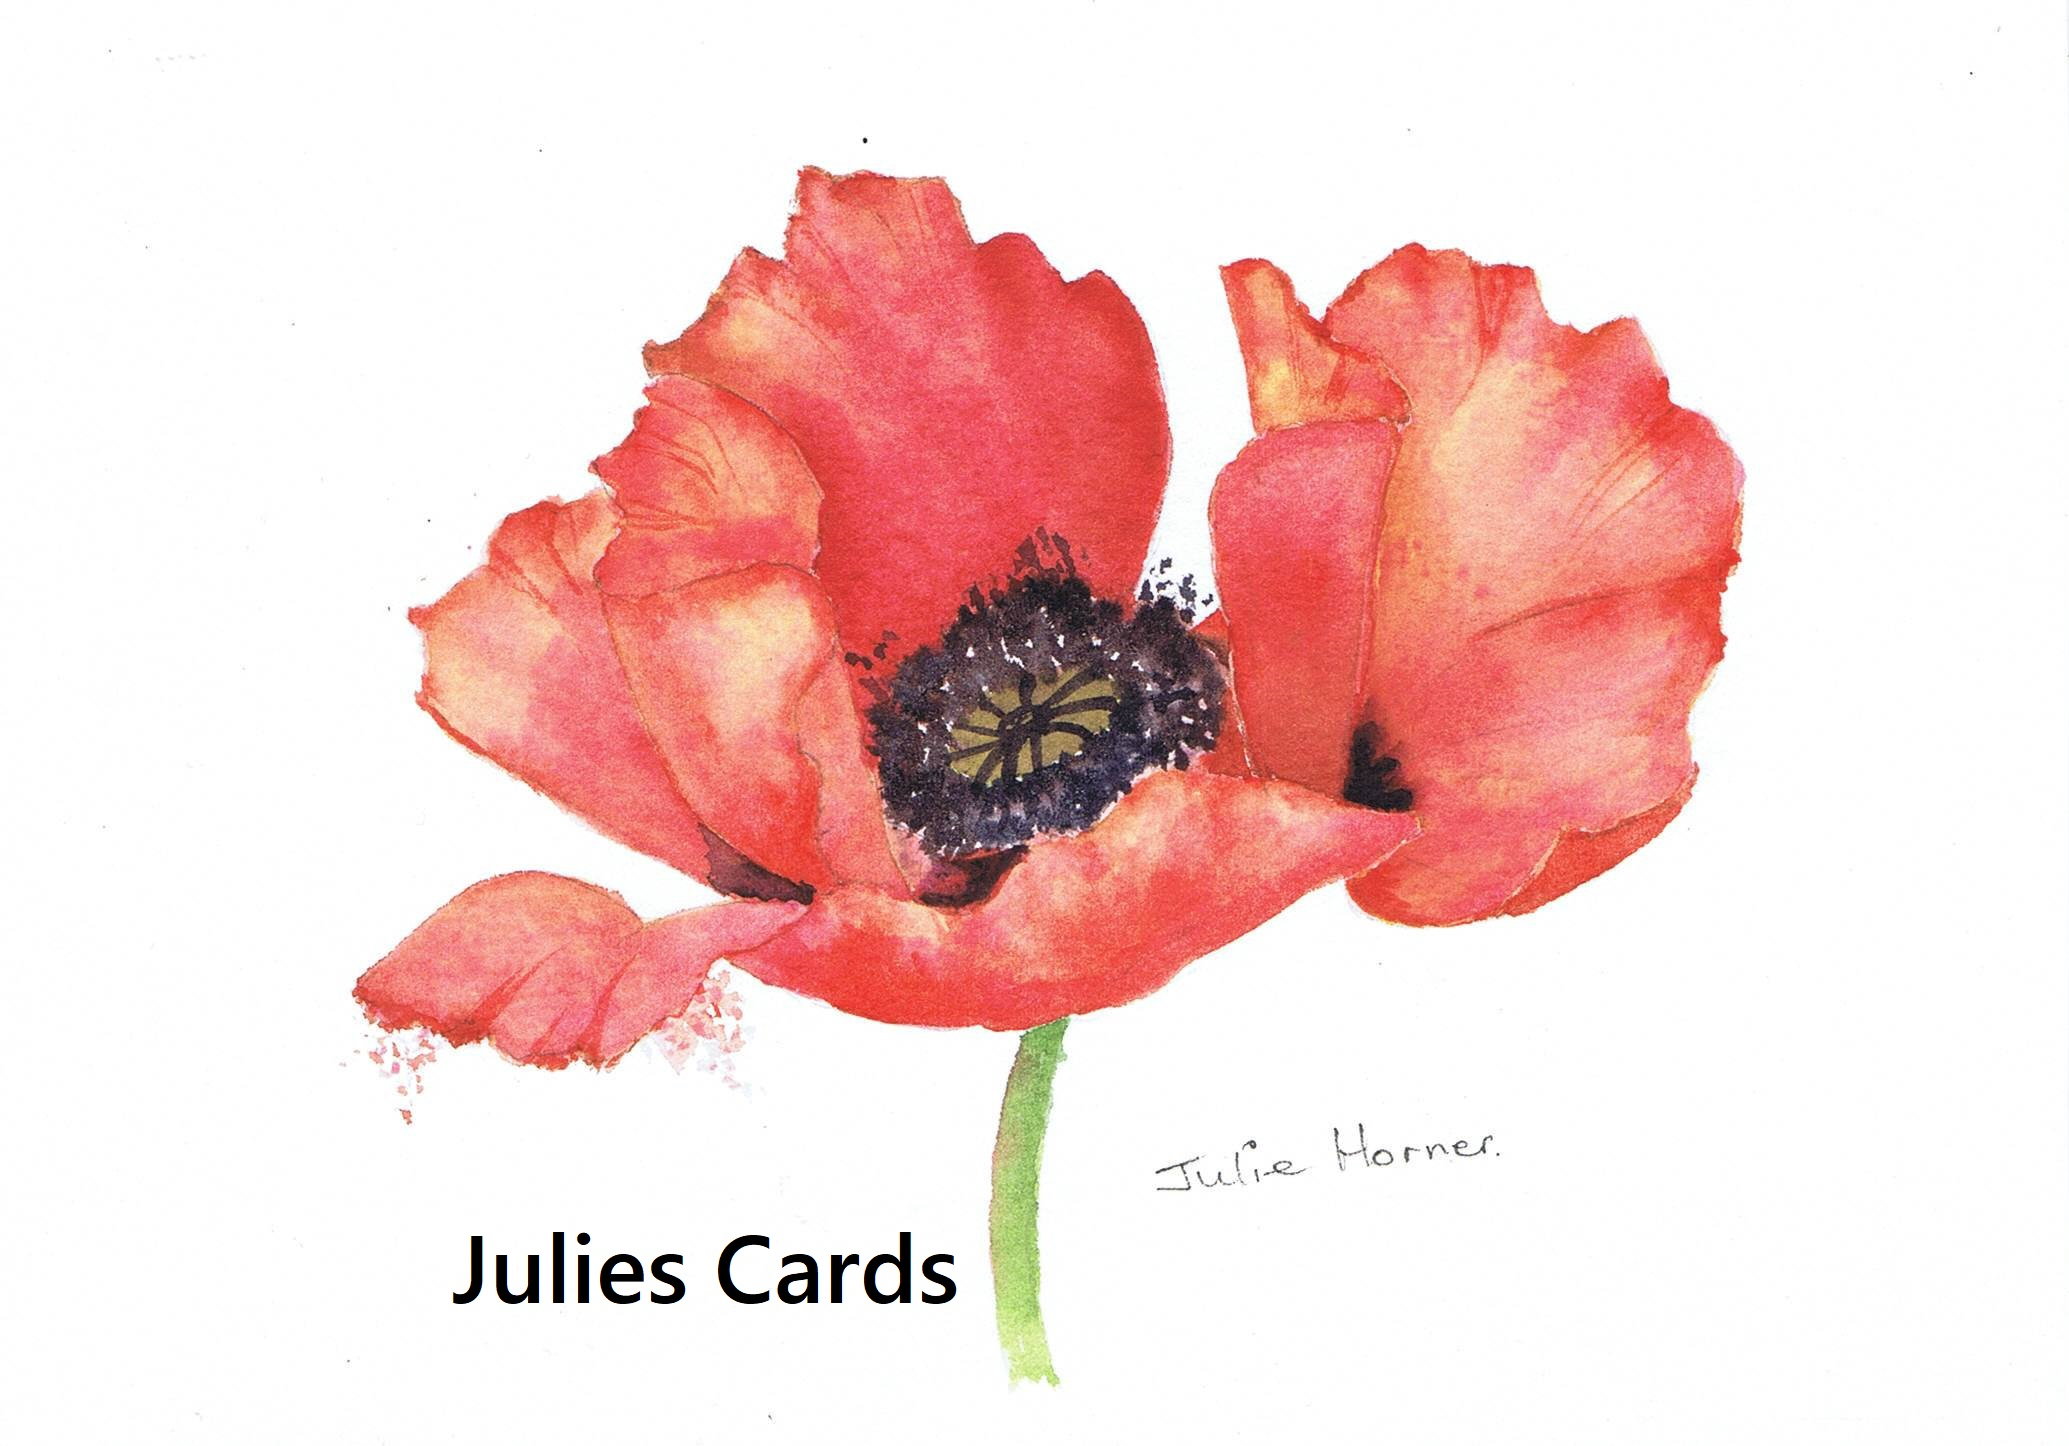 greeting cards by Juliescards